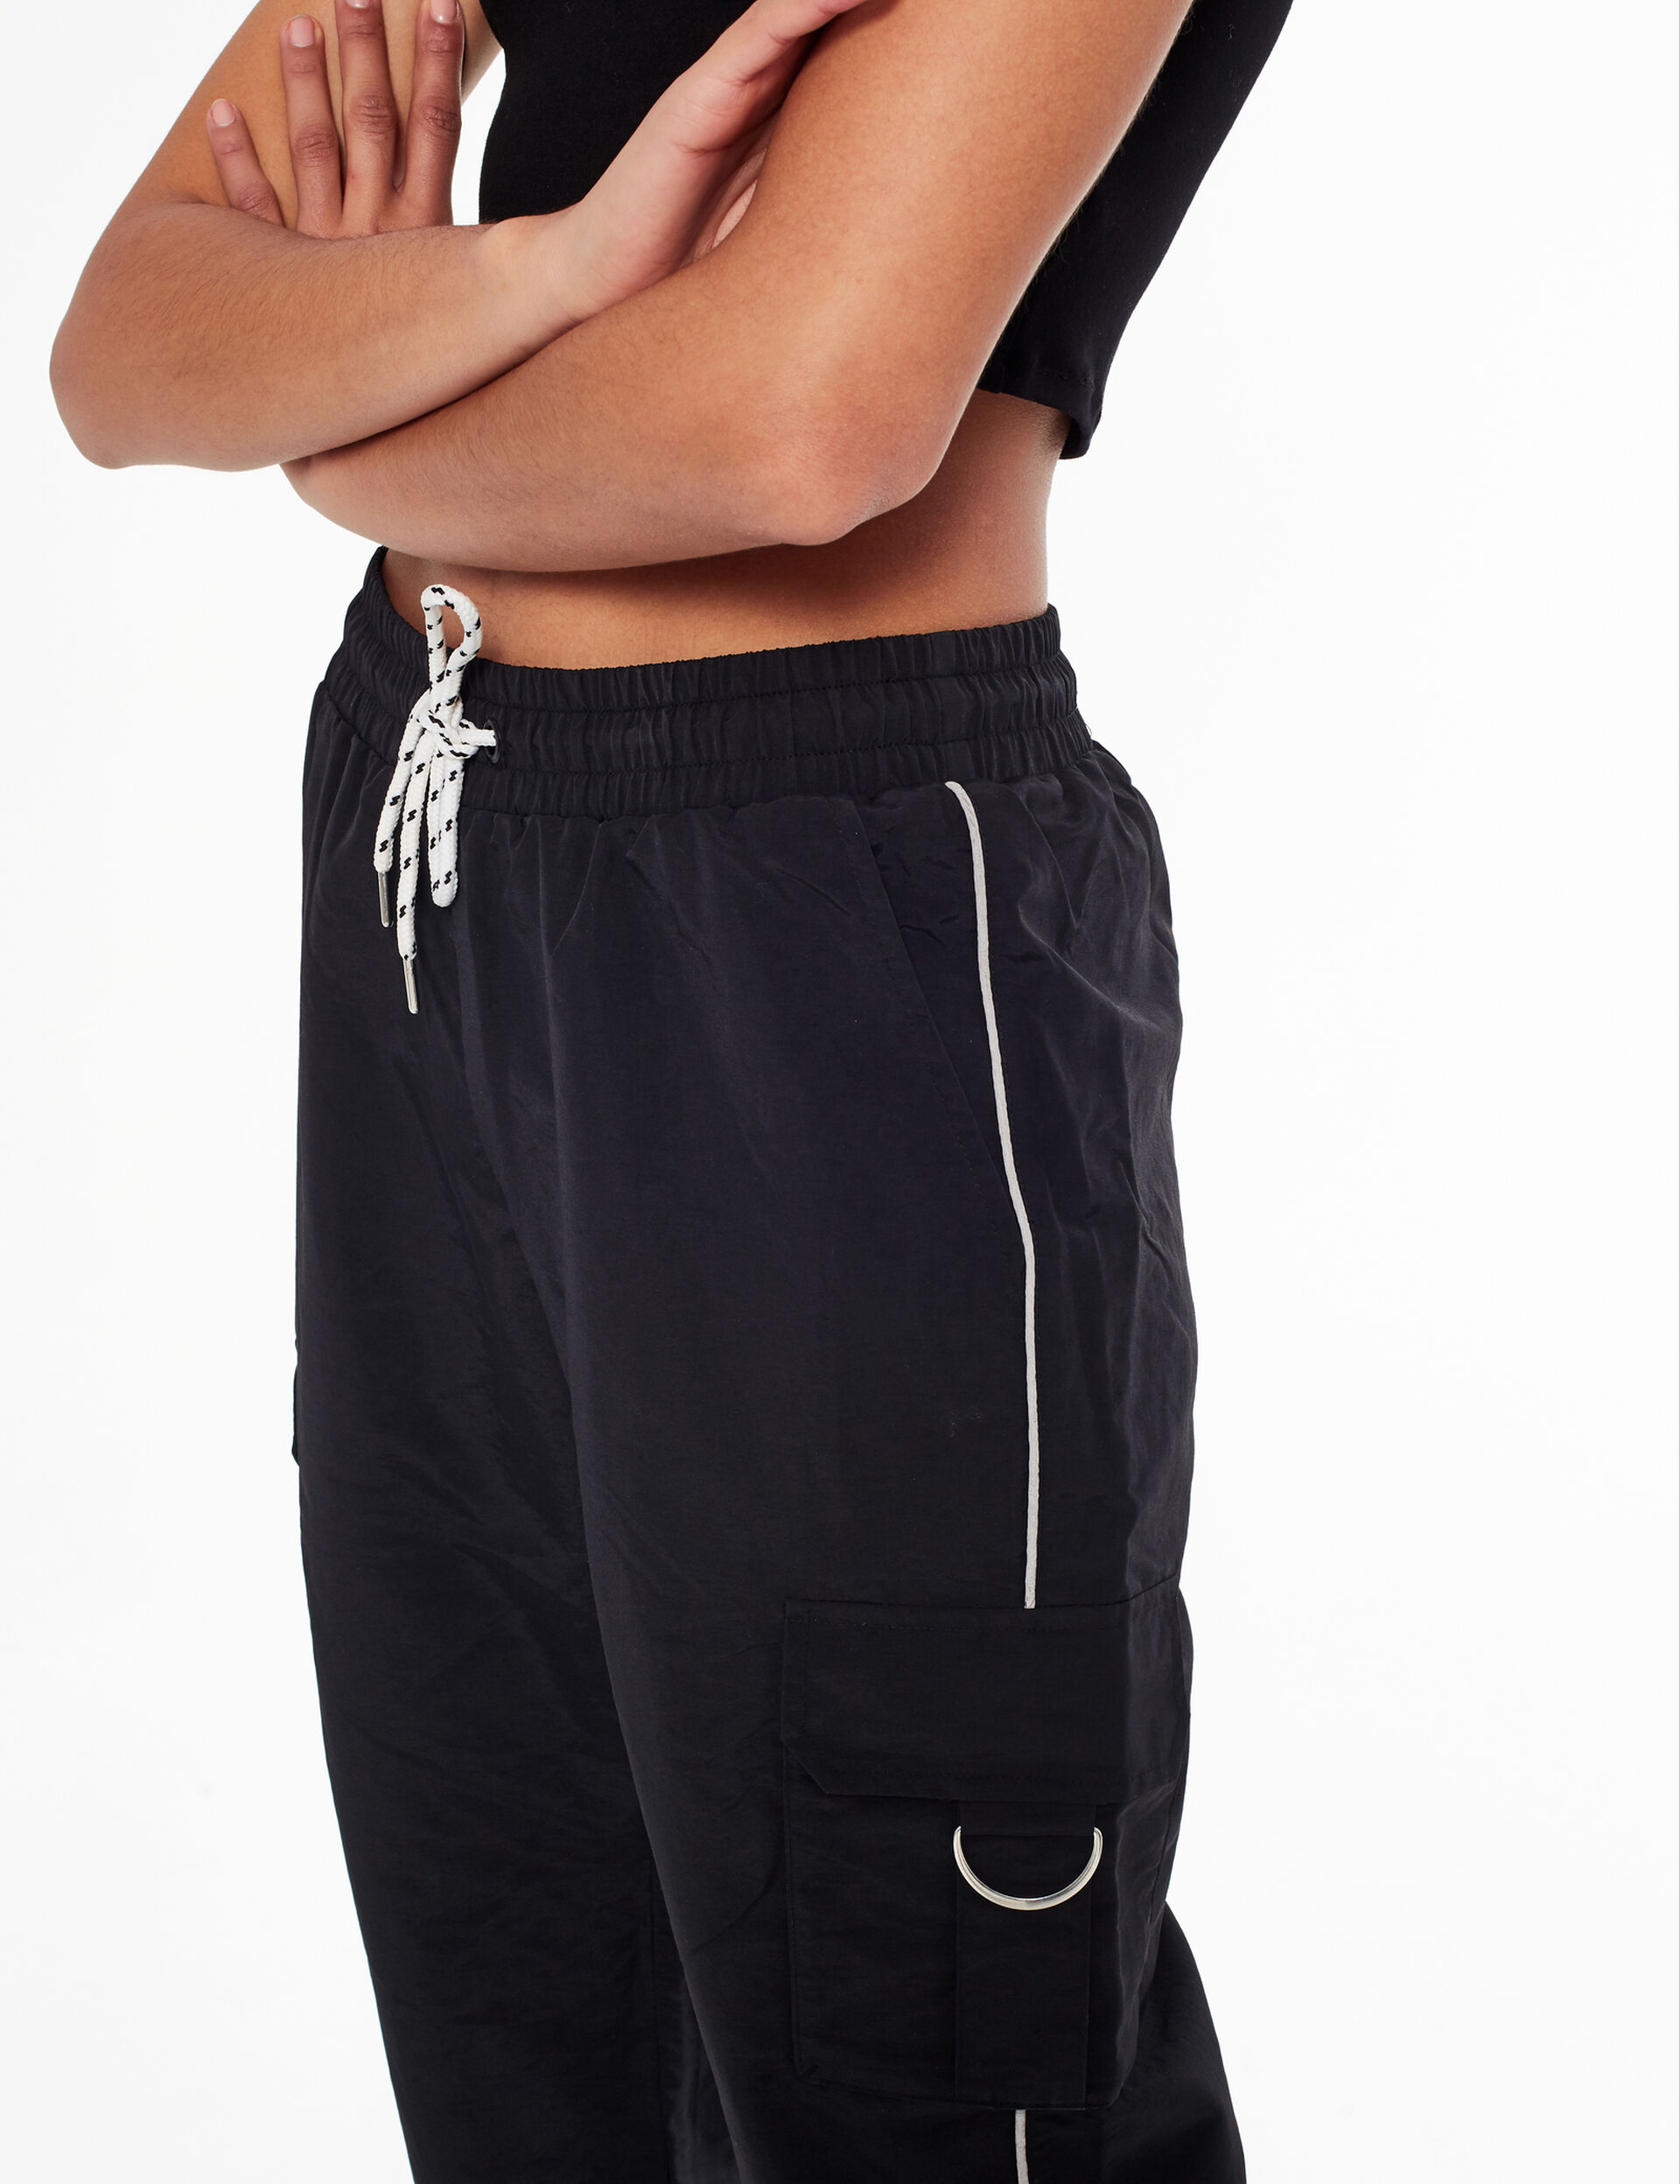 Joggers with reflective trim detail